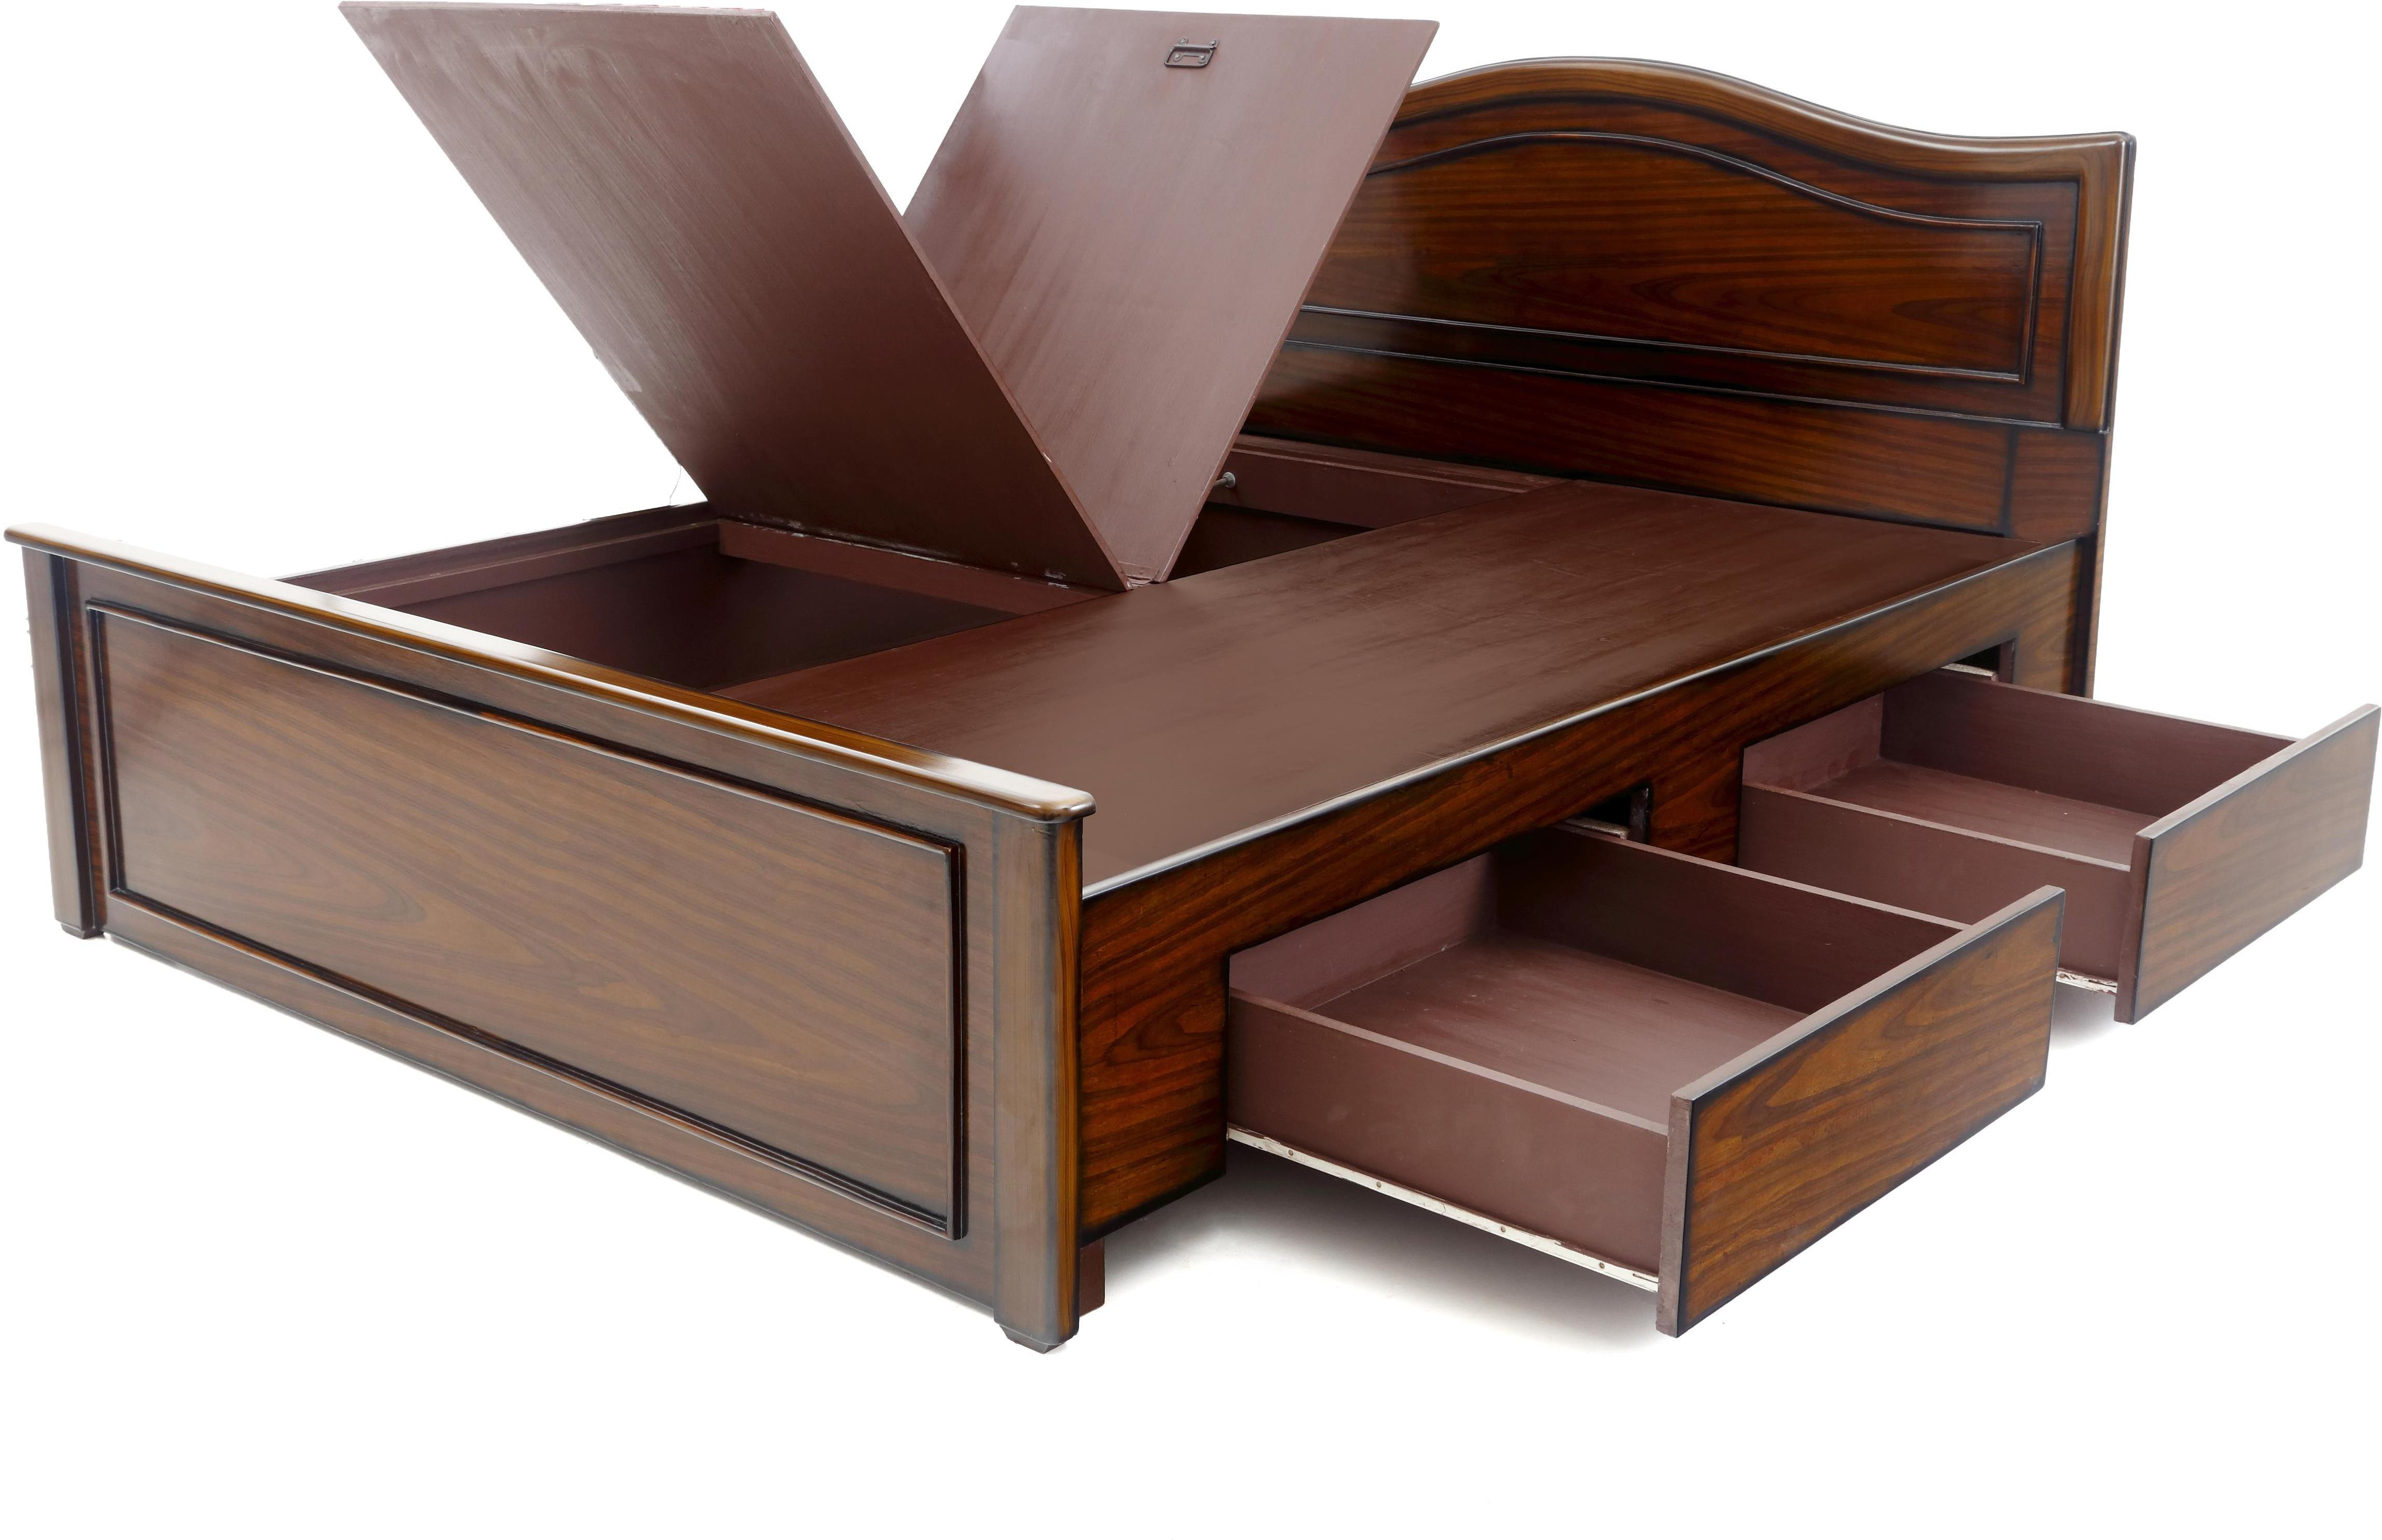 Furnicity Engineered Wood King Bed With Storage Price In